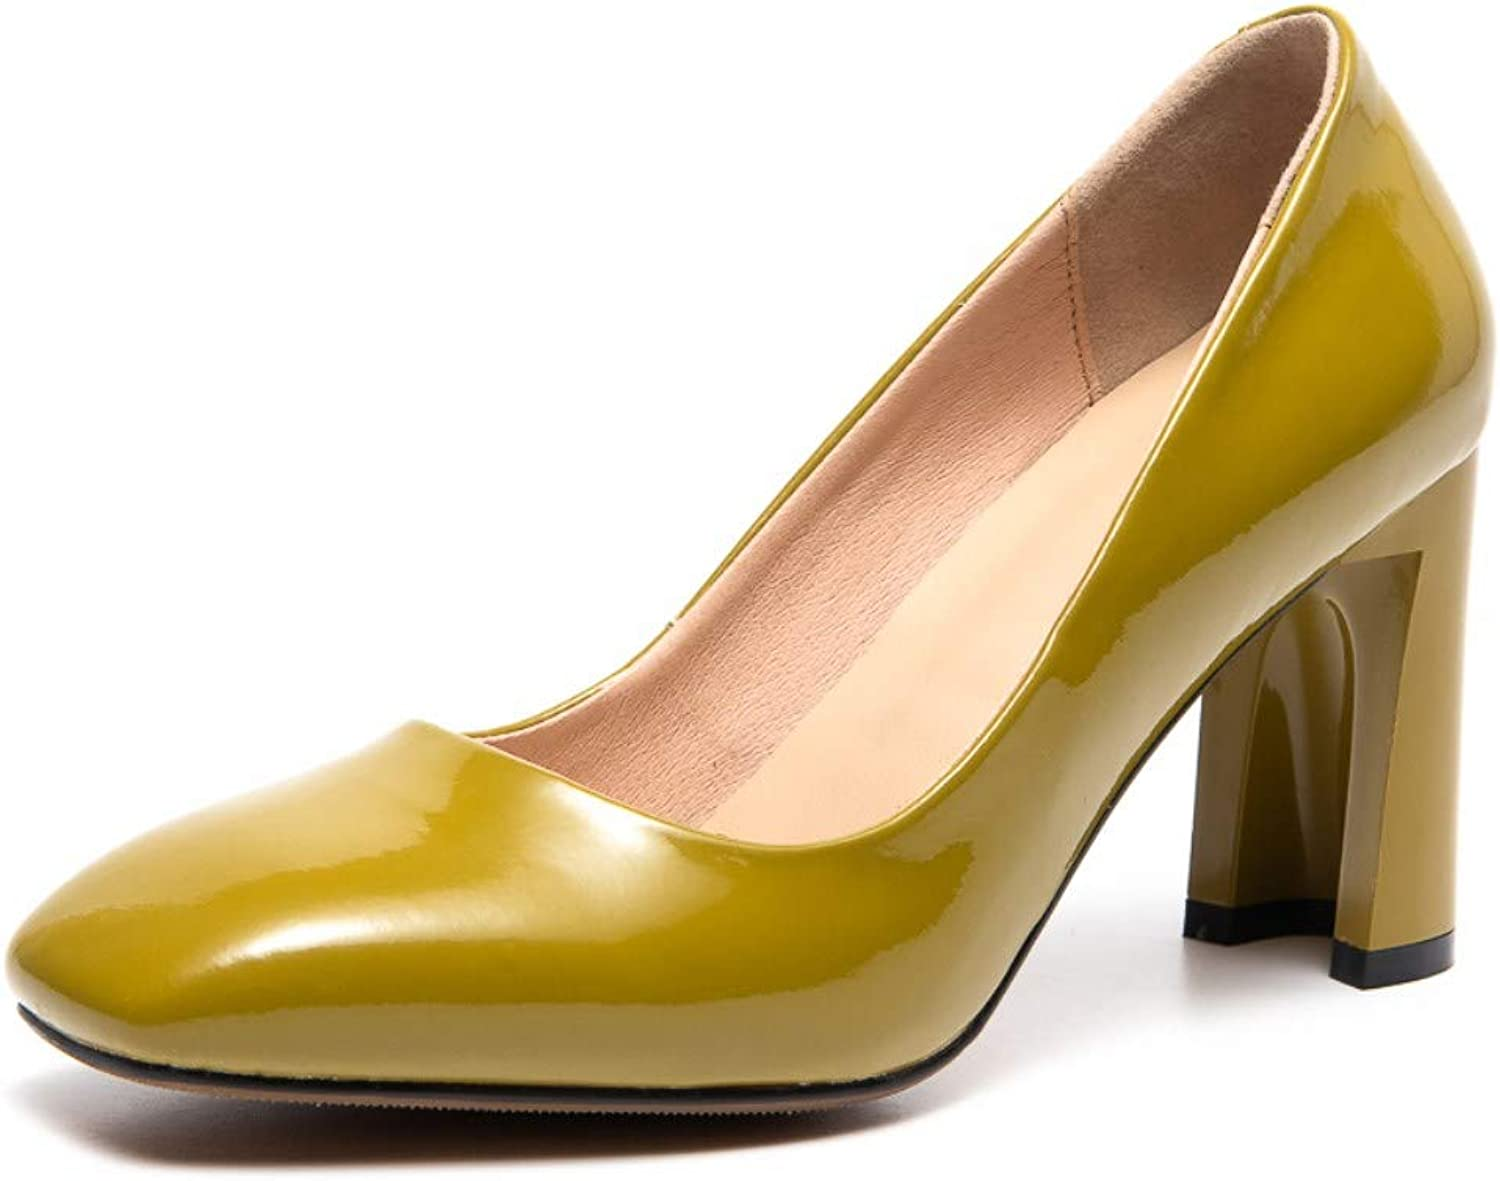 Nine Seven Women's Patent Leather Closed Square Toe High Chunky Heel Handmade Casual Comfort Slip On Pump shoes